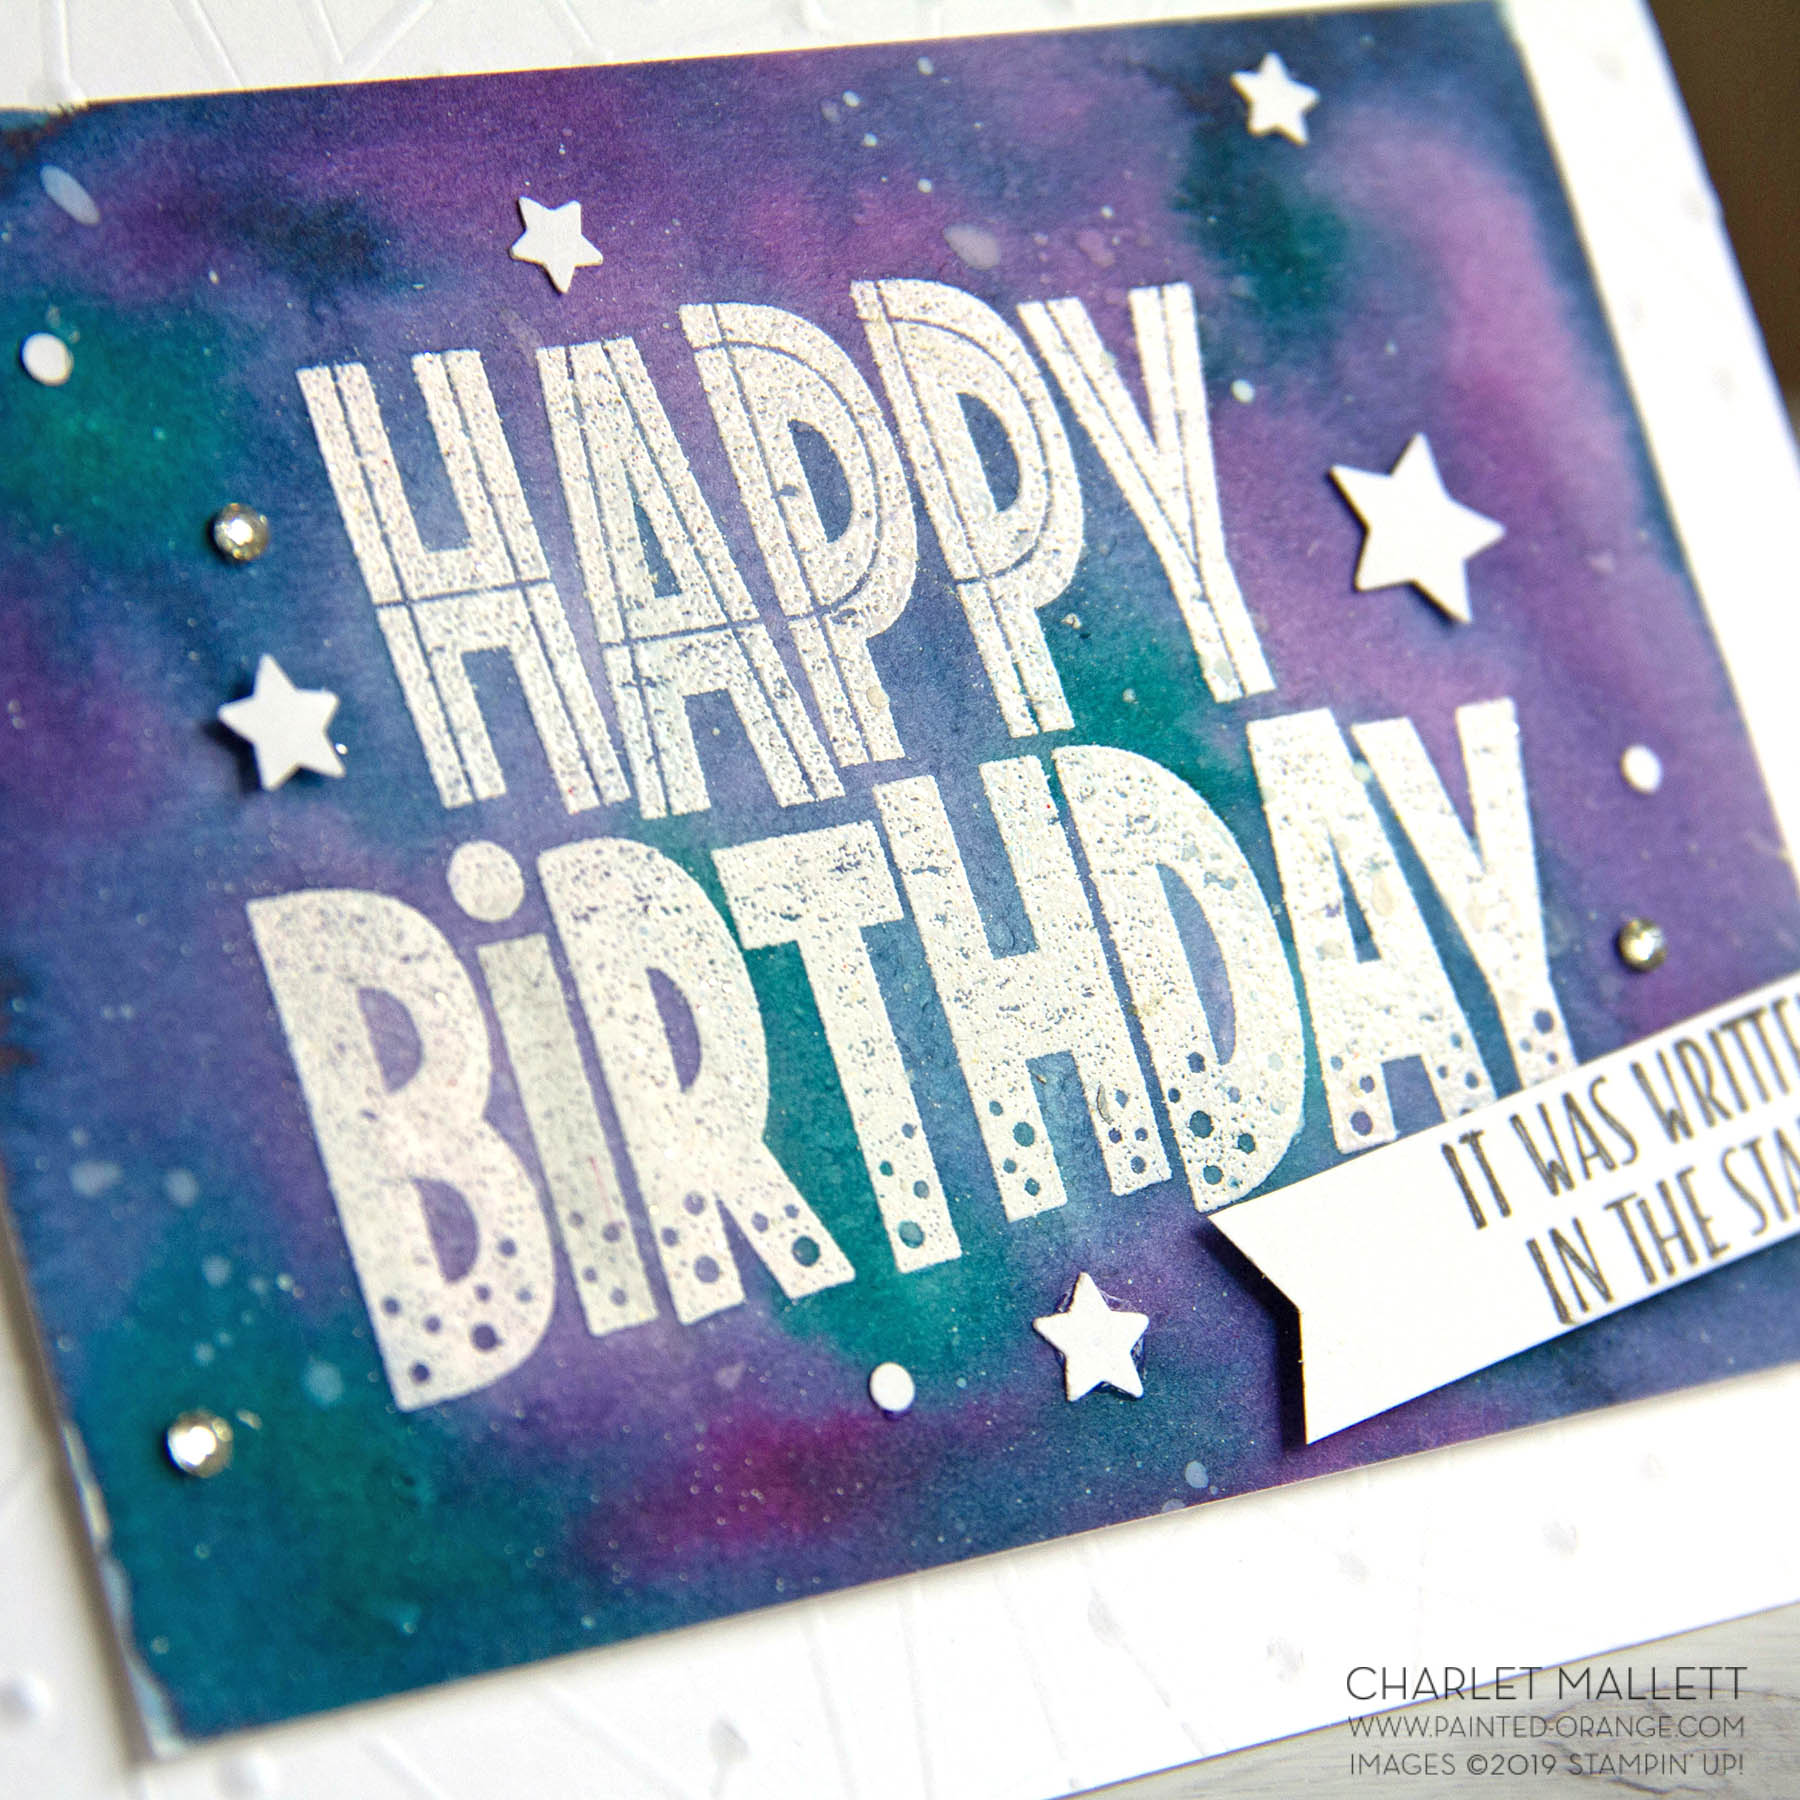 One for All Galaxy Birthday Card - Charlet Mallett, Stampin' Up!